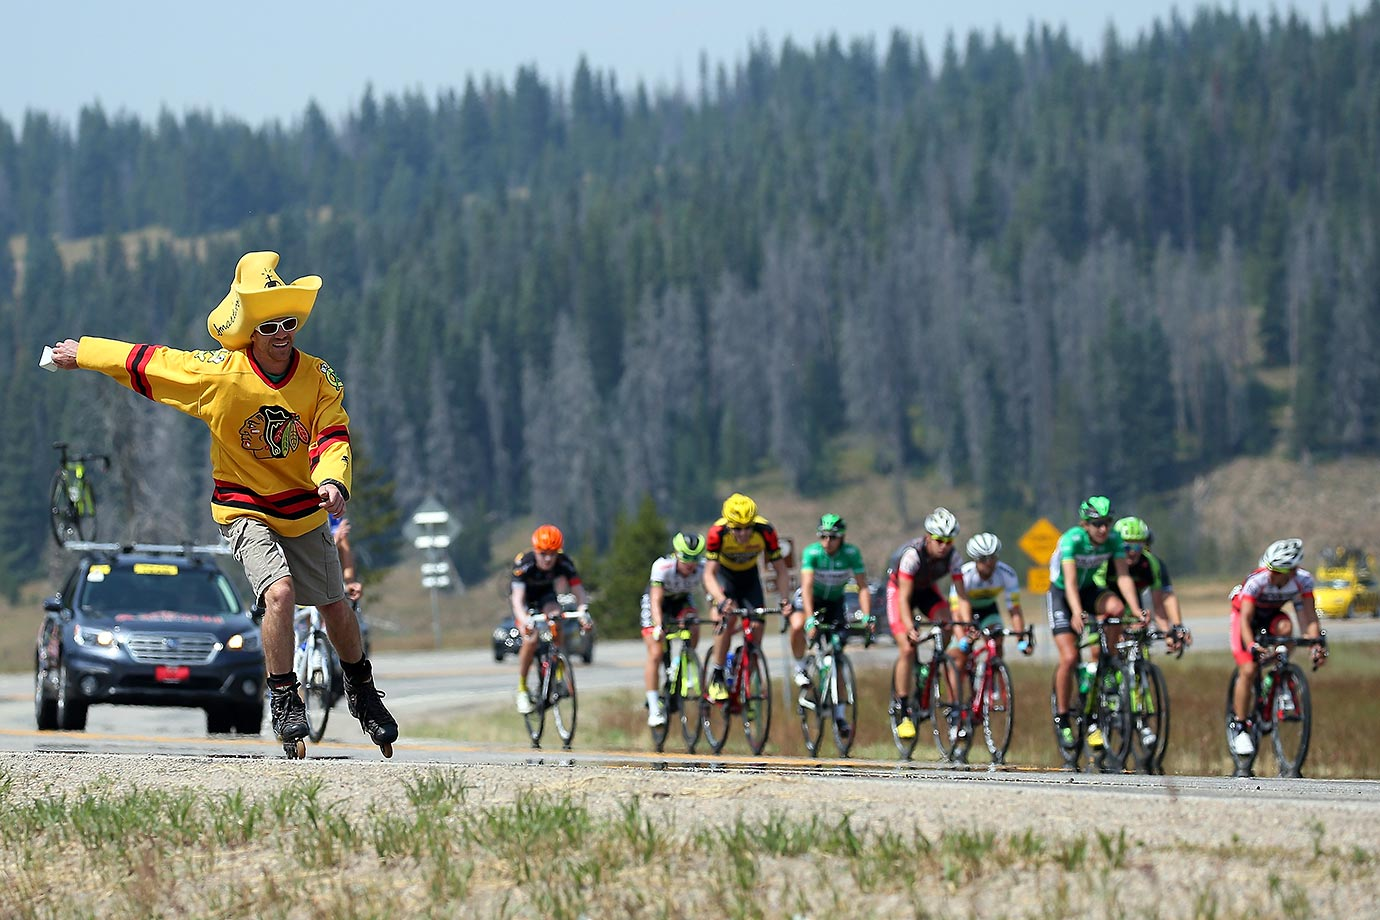 Nick Fettkether skates along with the breakaway during stage two of the 2015 USA Pro Challenge from Steamboat Springs to Arapahoe Basin.